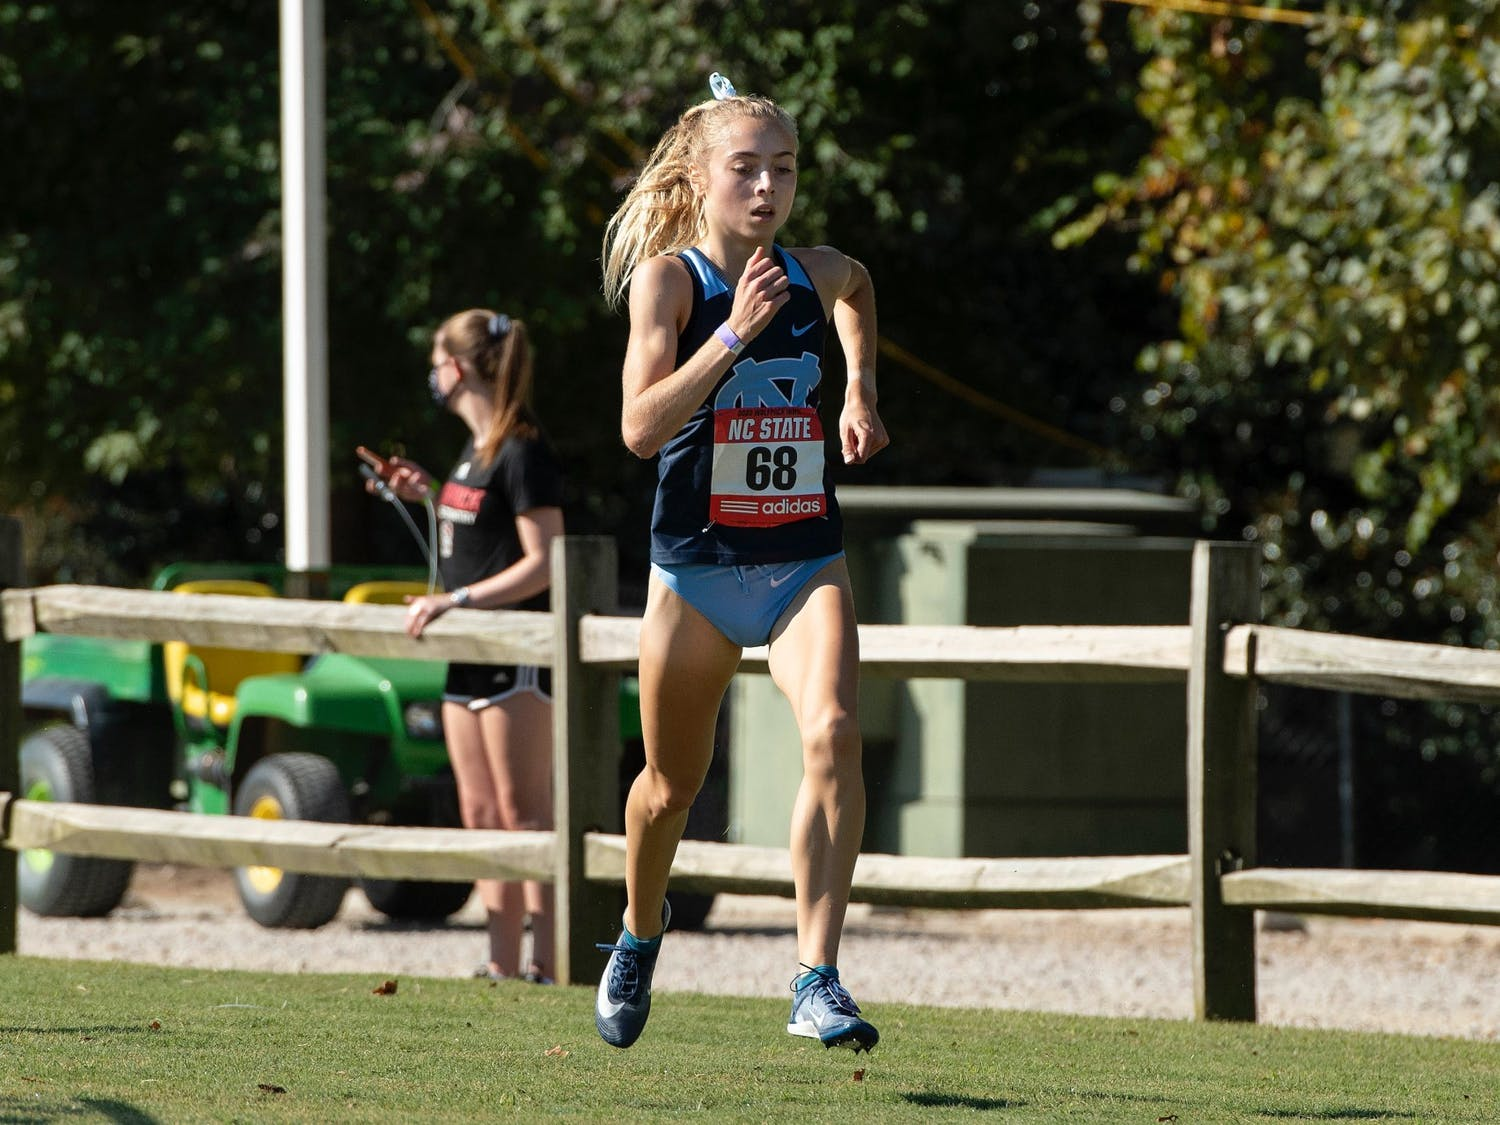 First-year Sasha Neglia runs during the Wolfpack Invite in Cary, N.C. on Wednesday, Oct. 7, 2020. Photo courtesy of Jeffrey A. Camarati.